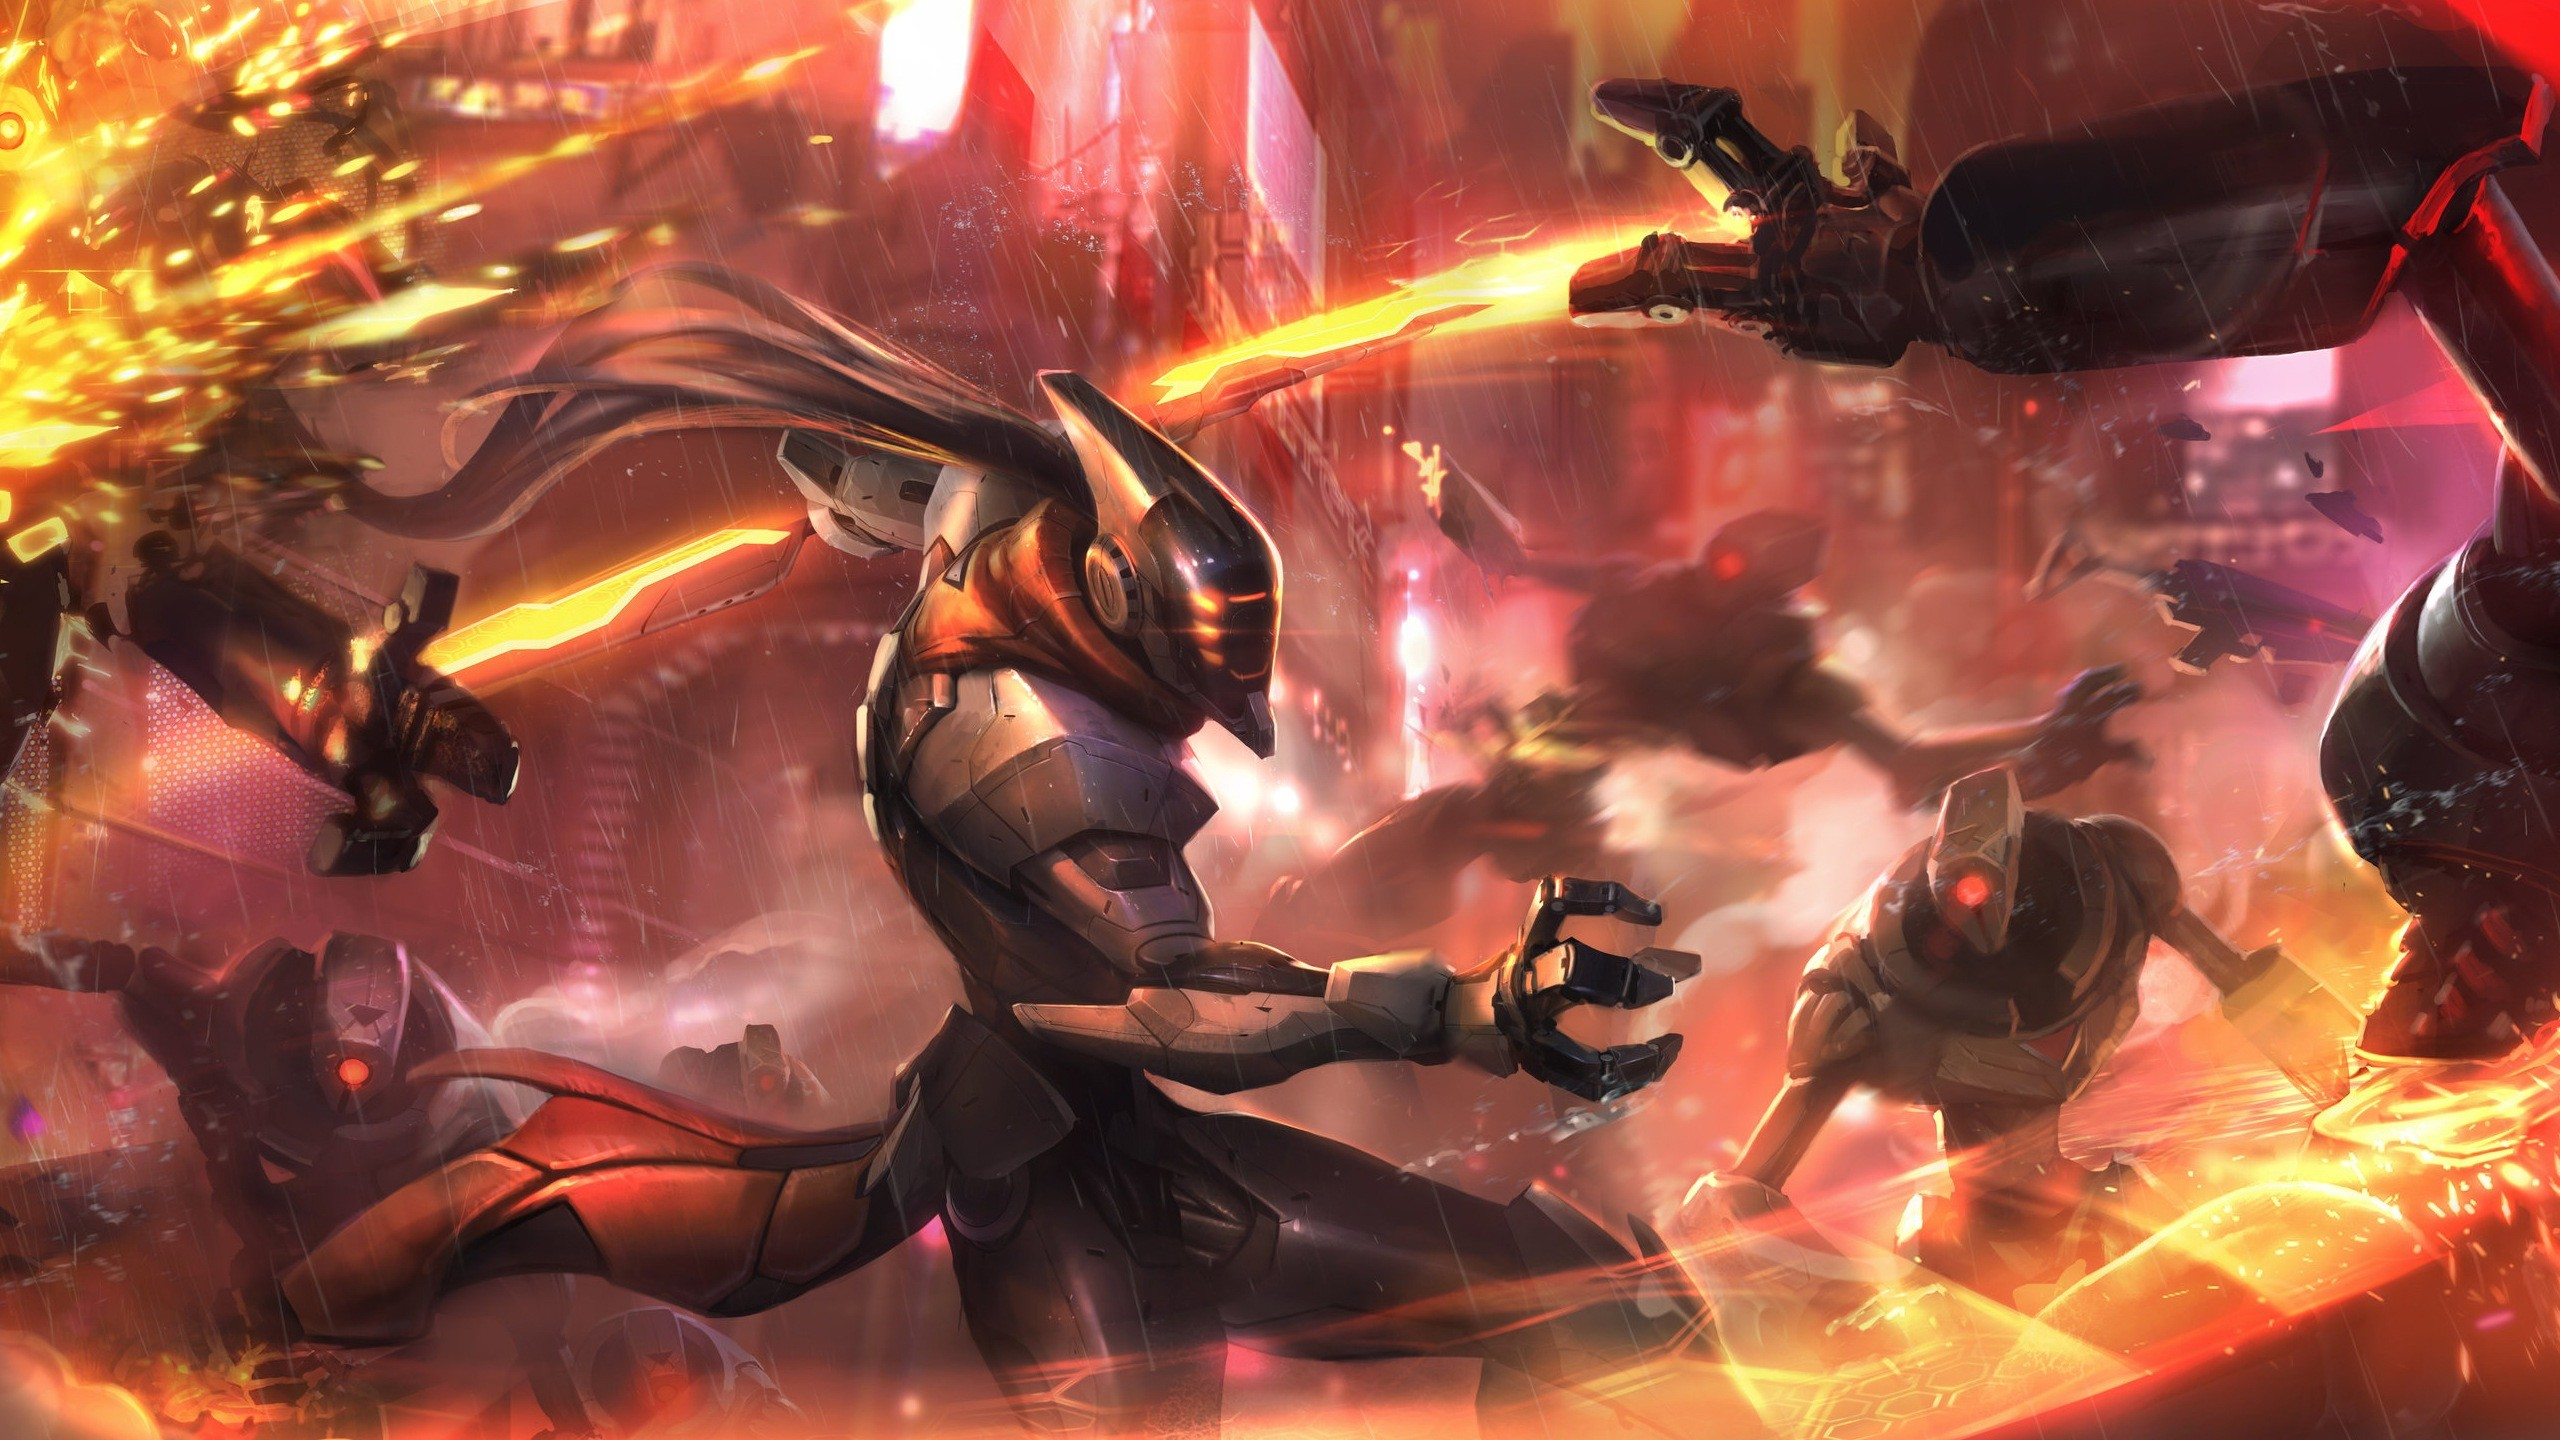 Download PROJECT Fiora Wallpaper Skin Art Fighting 1920×1080   Places to  Visit   Pinterest   Skin art, Cosplay and Anime